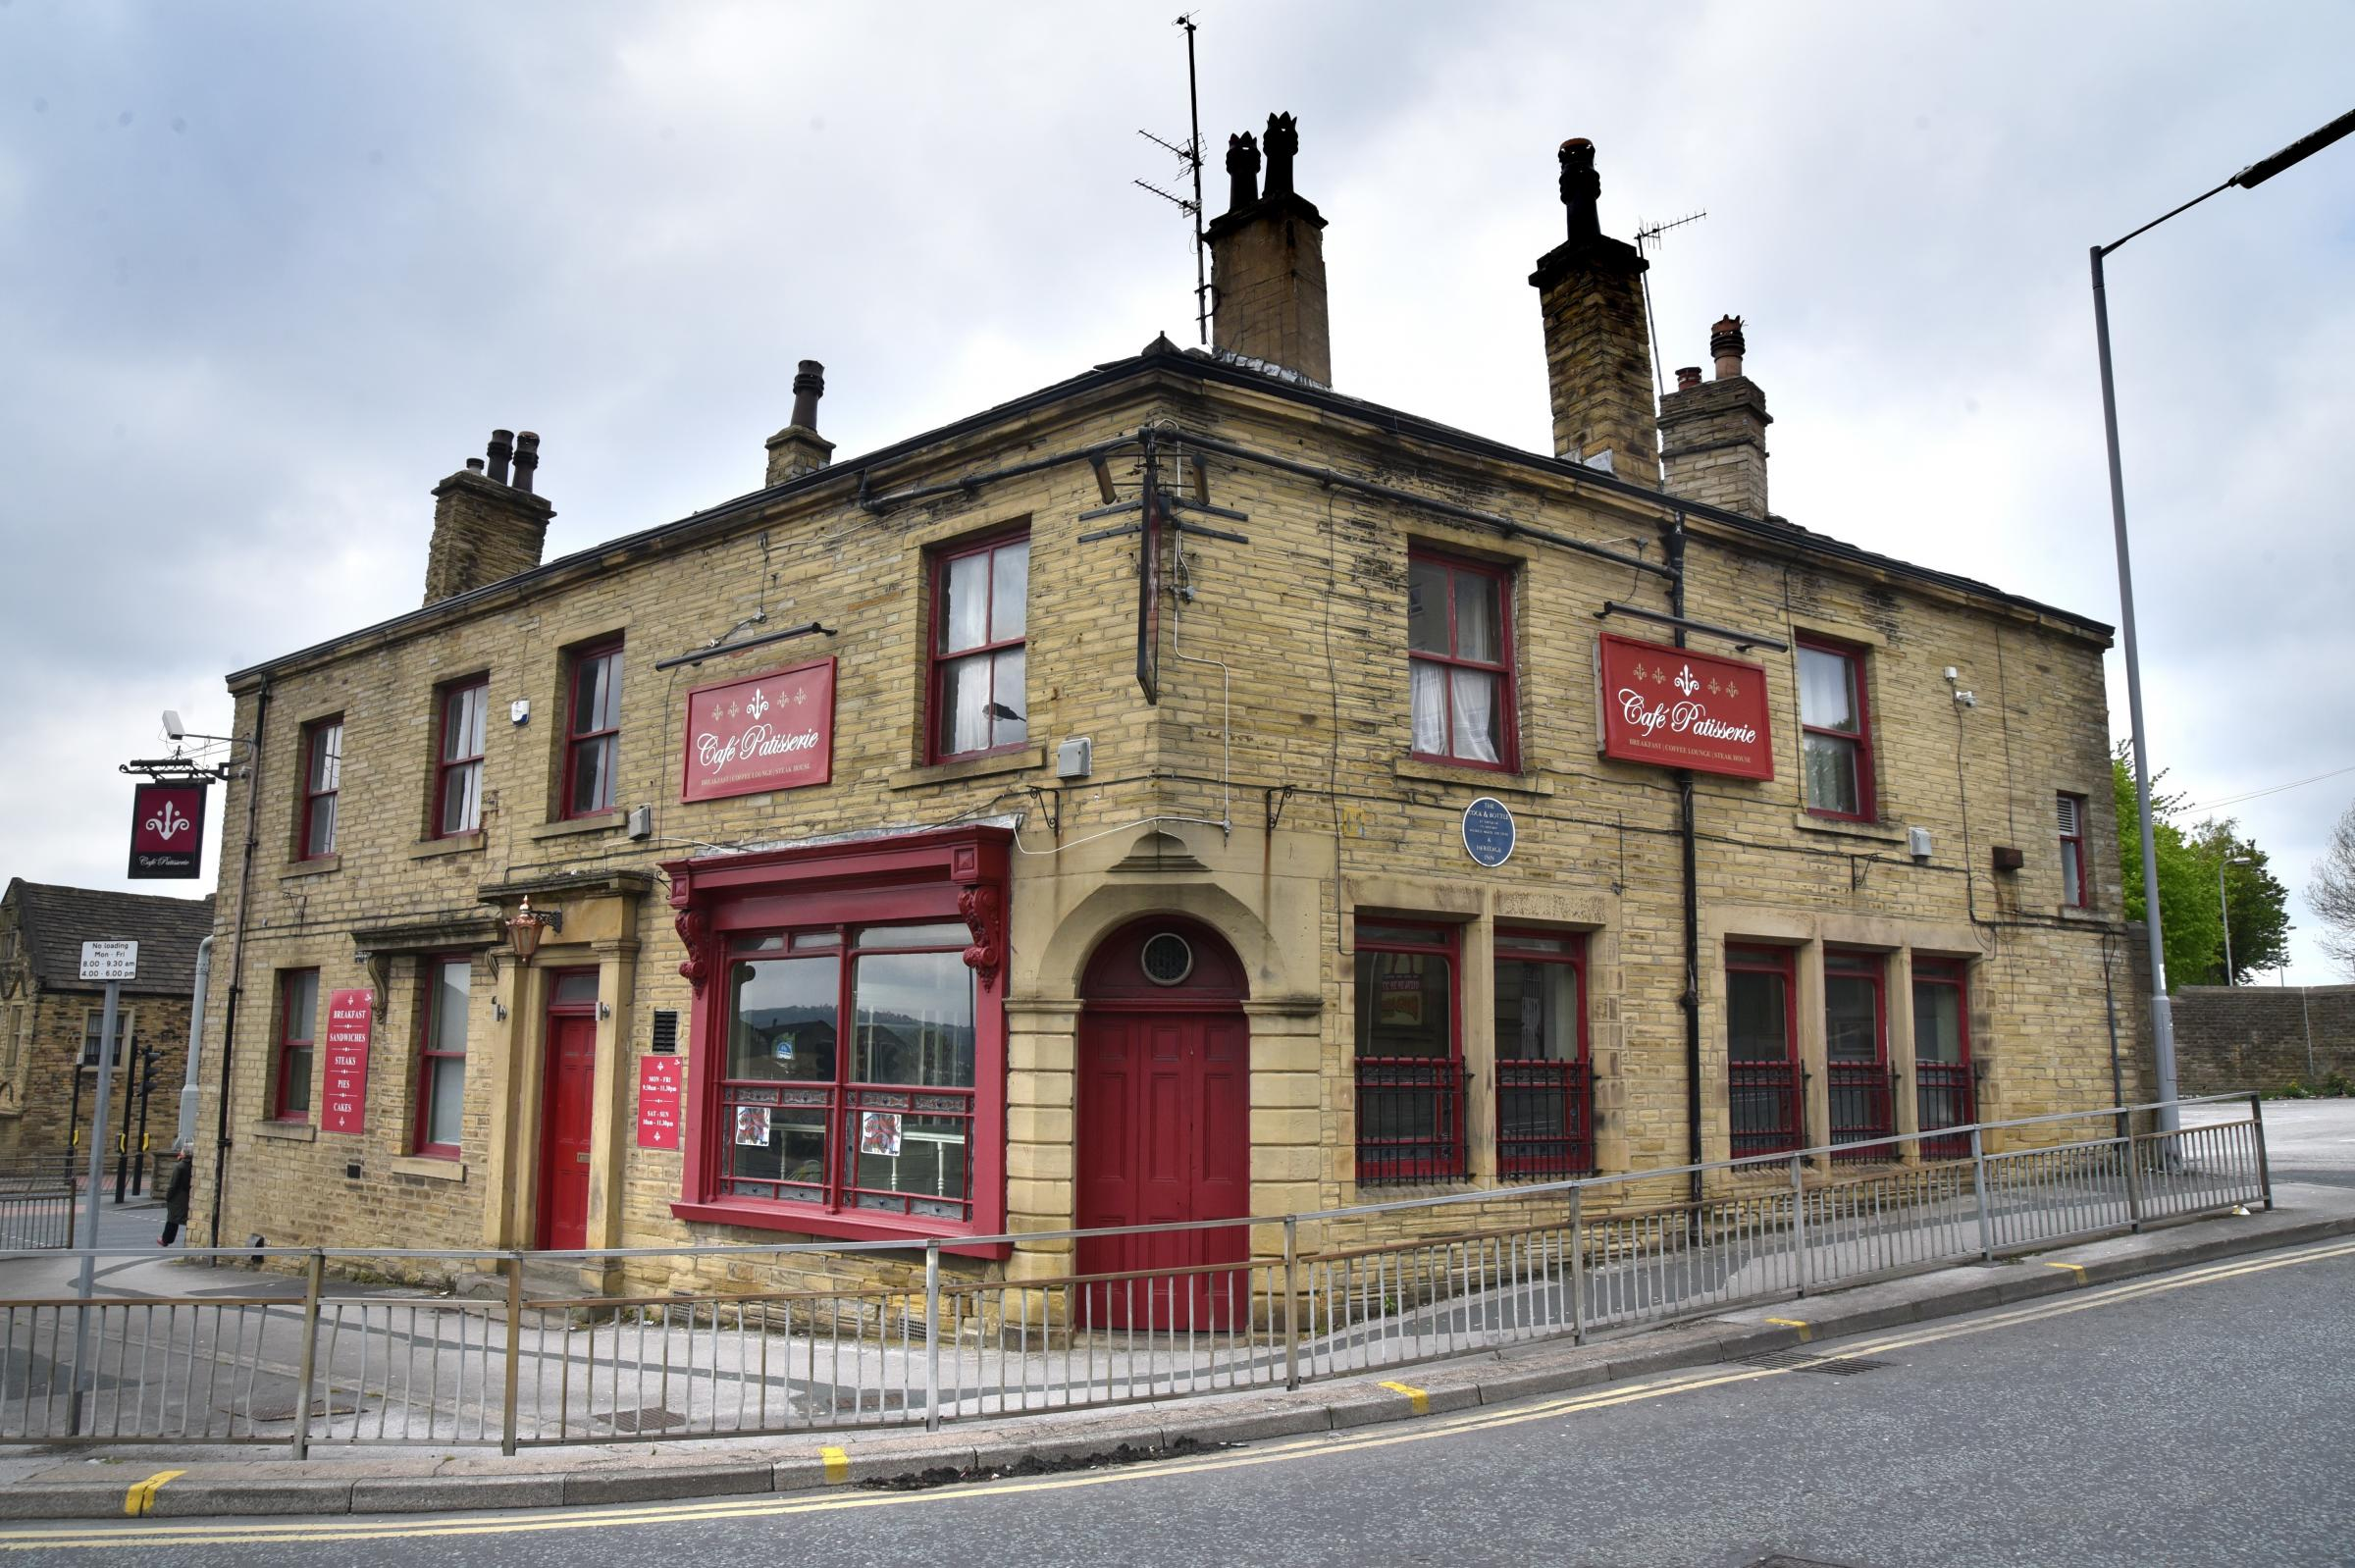 The old Cock & Bottle pub, Barkerend Road, as it stands today. Plans have been lodged to turn the upper floors into a HMO